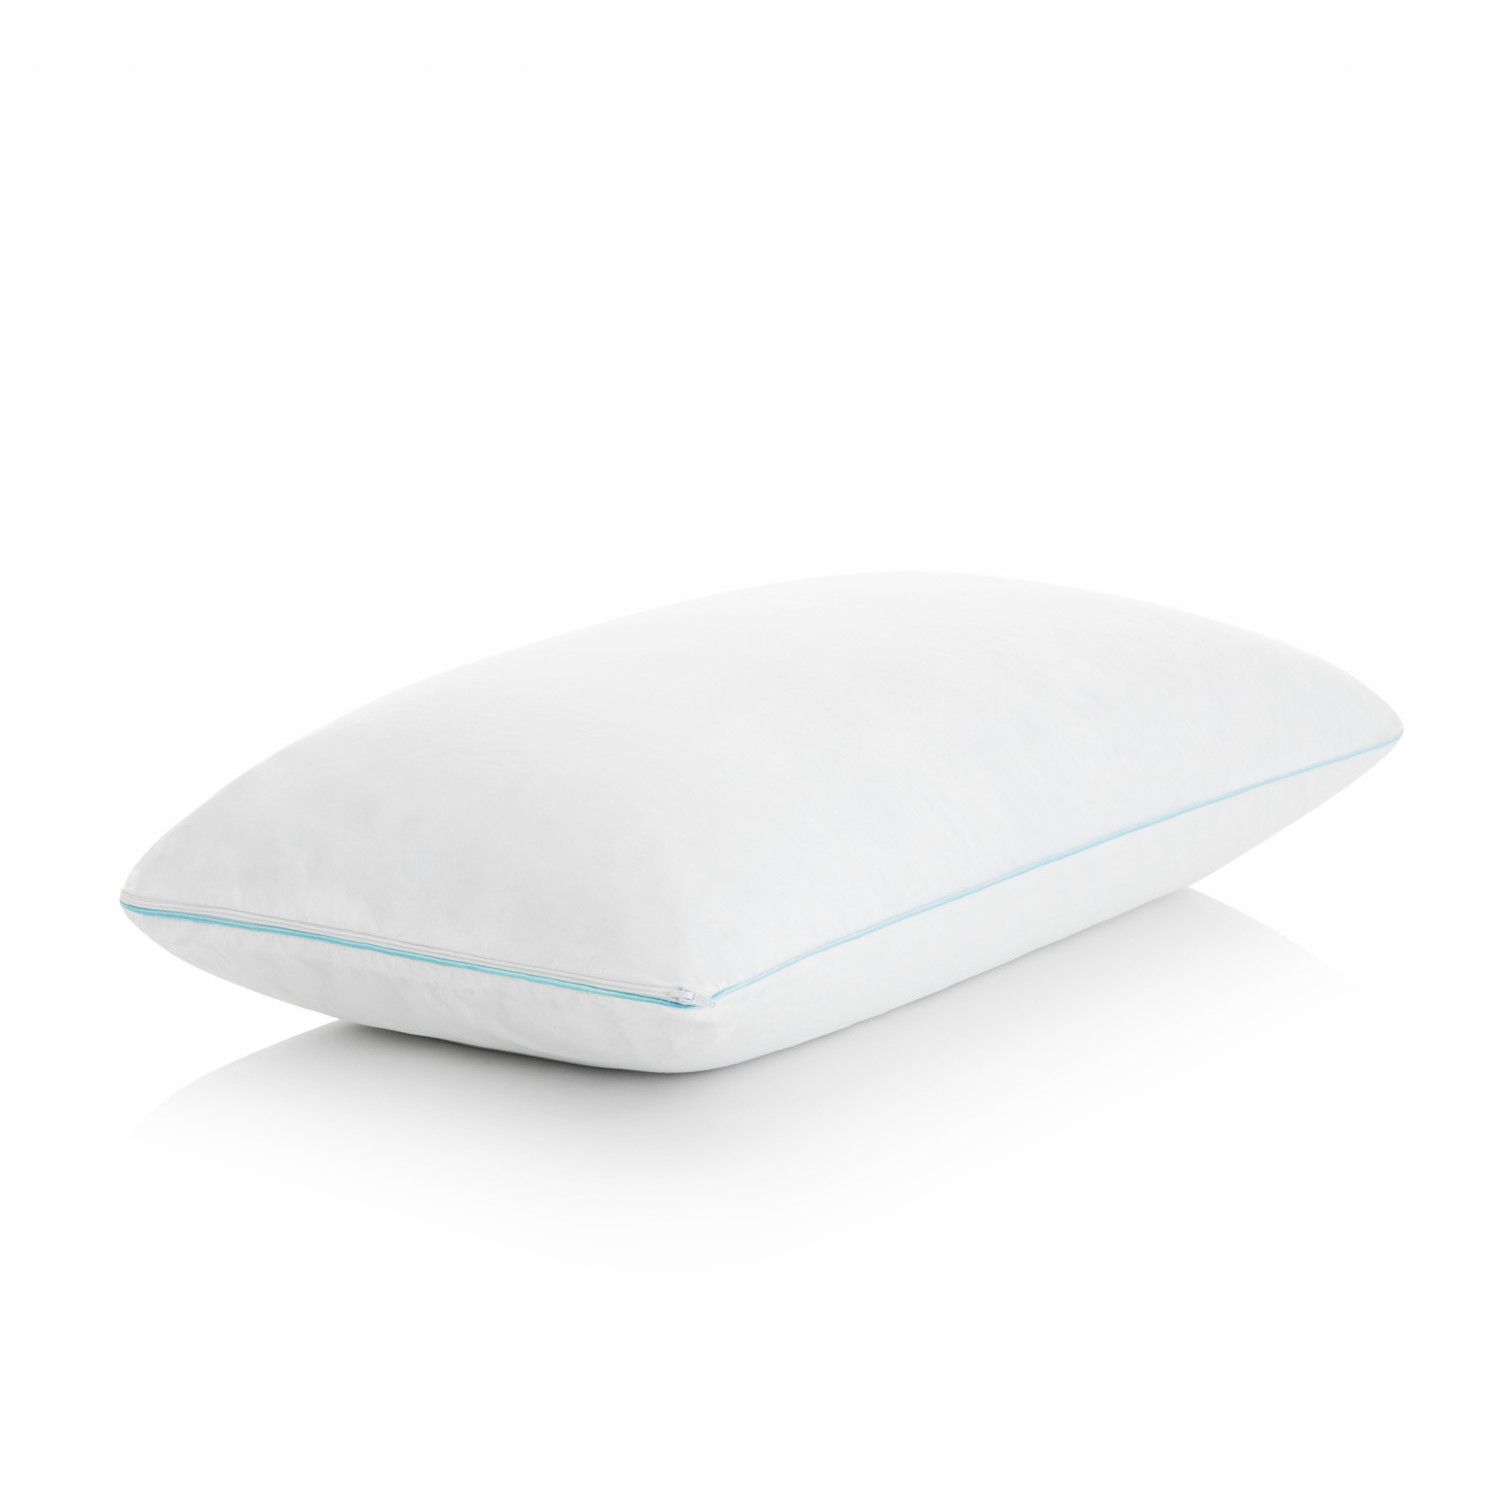 Gel Infused Memory Foam Pillow Shredded Memory Foam Pillow With Gel Memory Foam